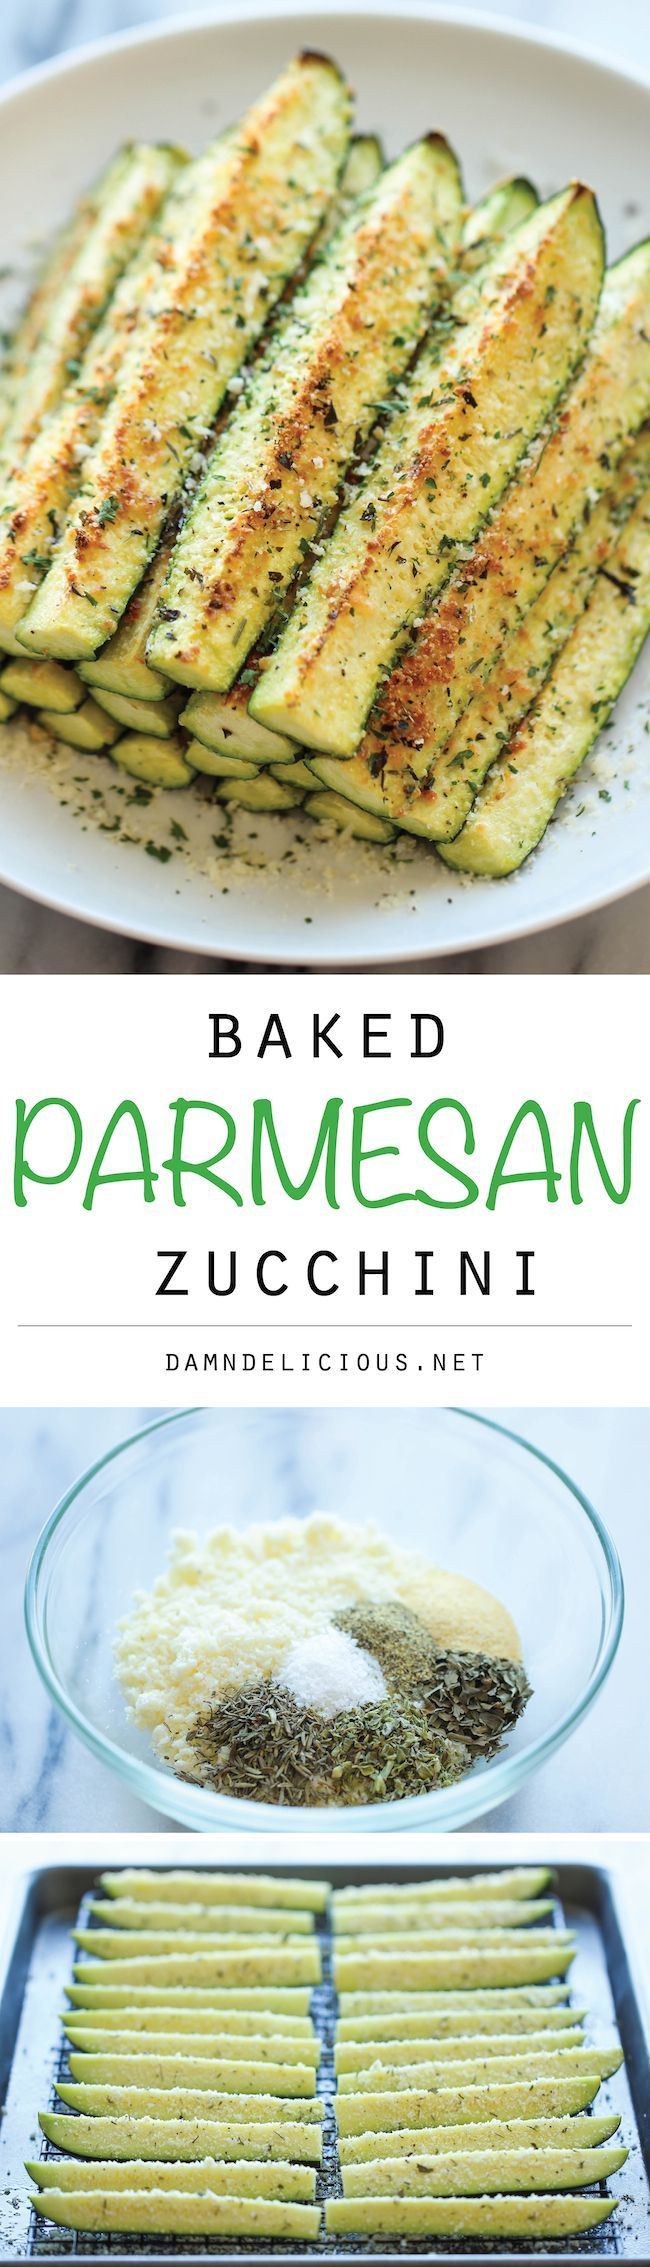 Baked Parmesan Zucchini Sticks - A healty vegetarian side dish